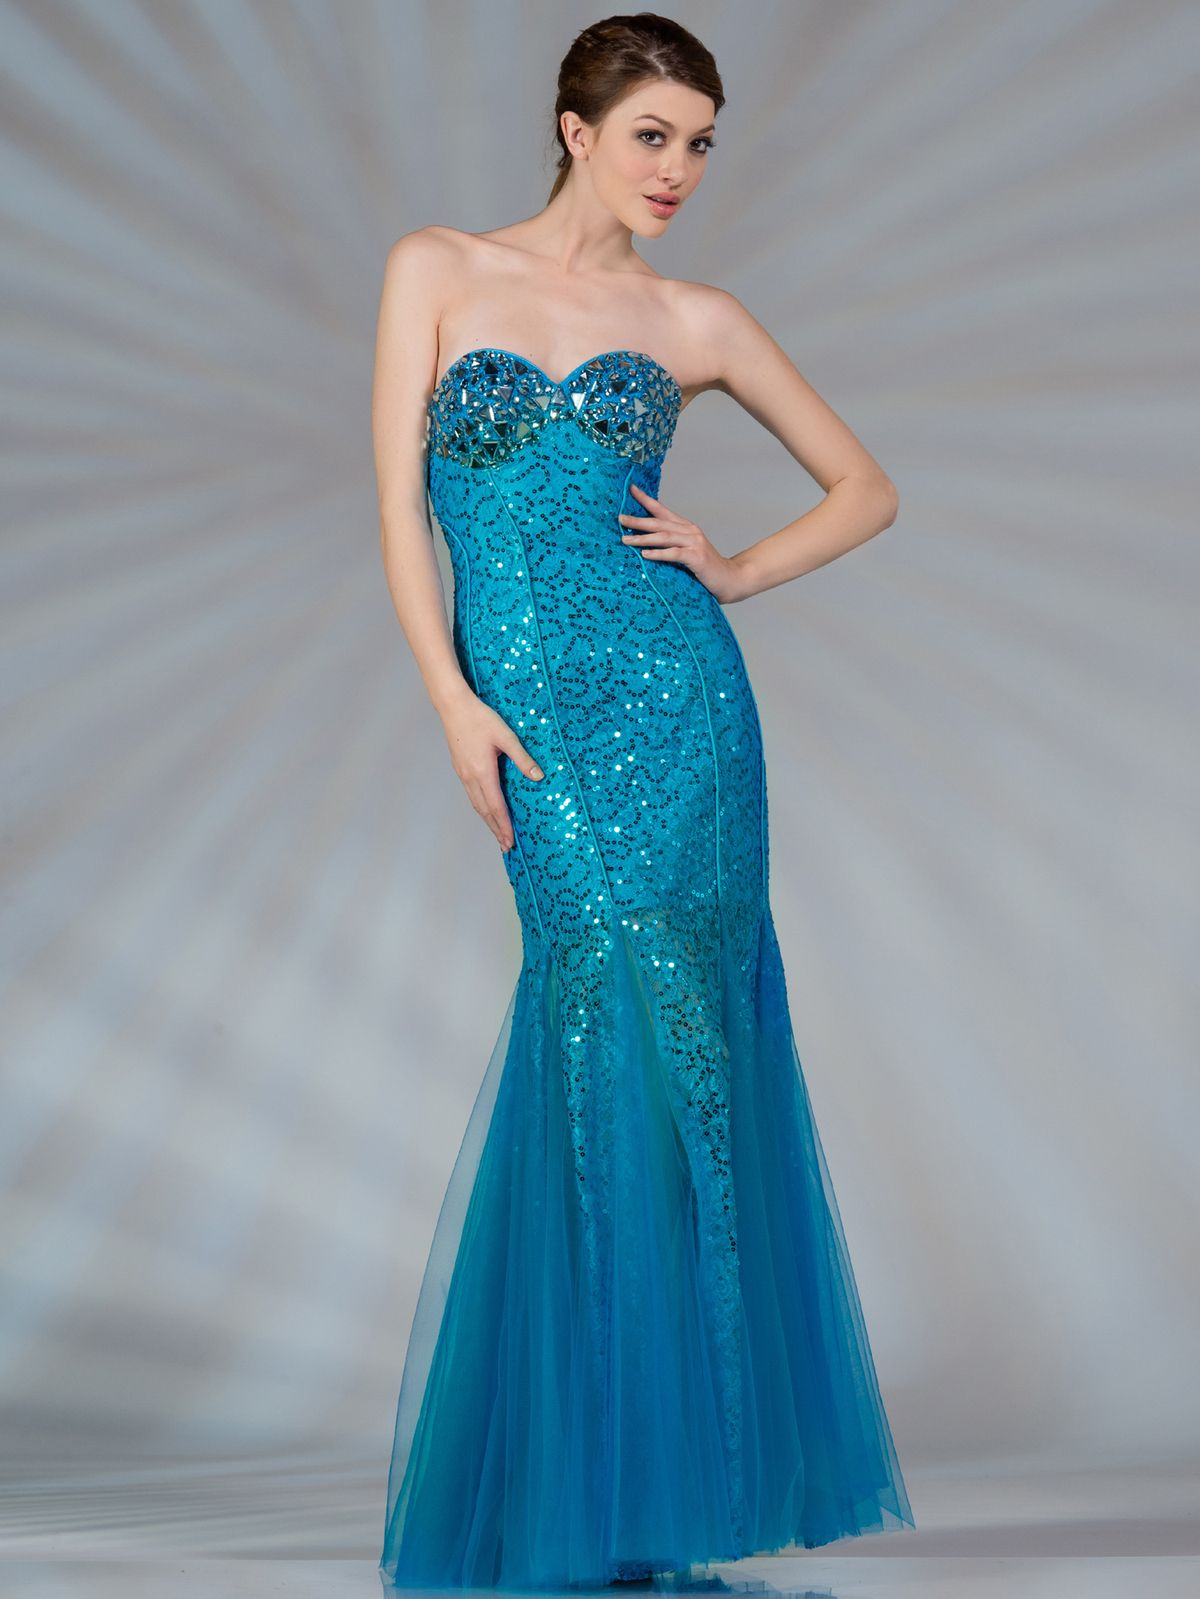 Bluemermaidpromdresses jc blue mermaid jeweled and sequin